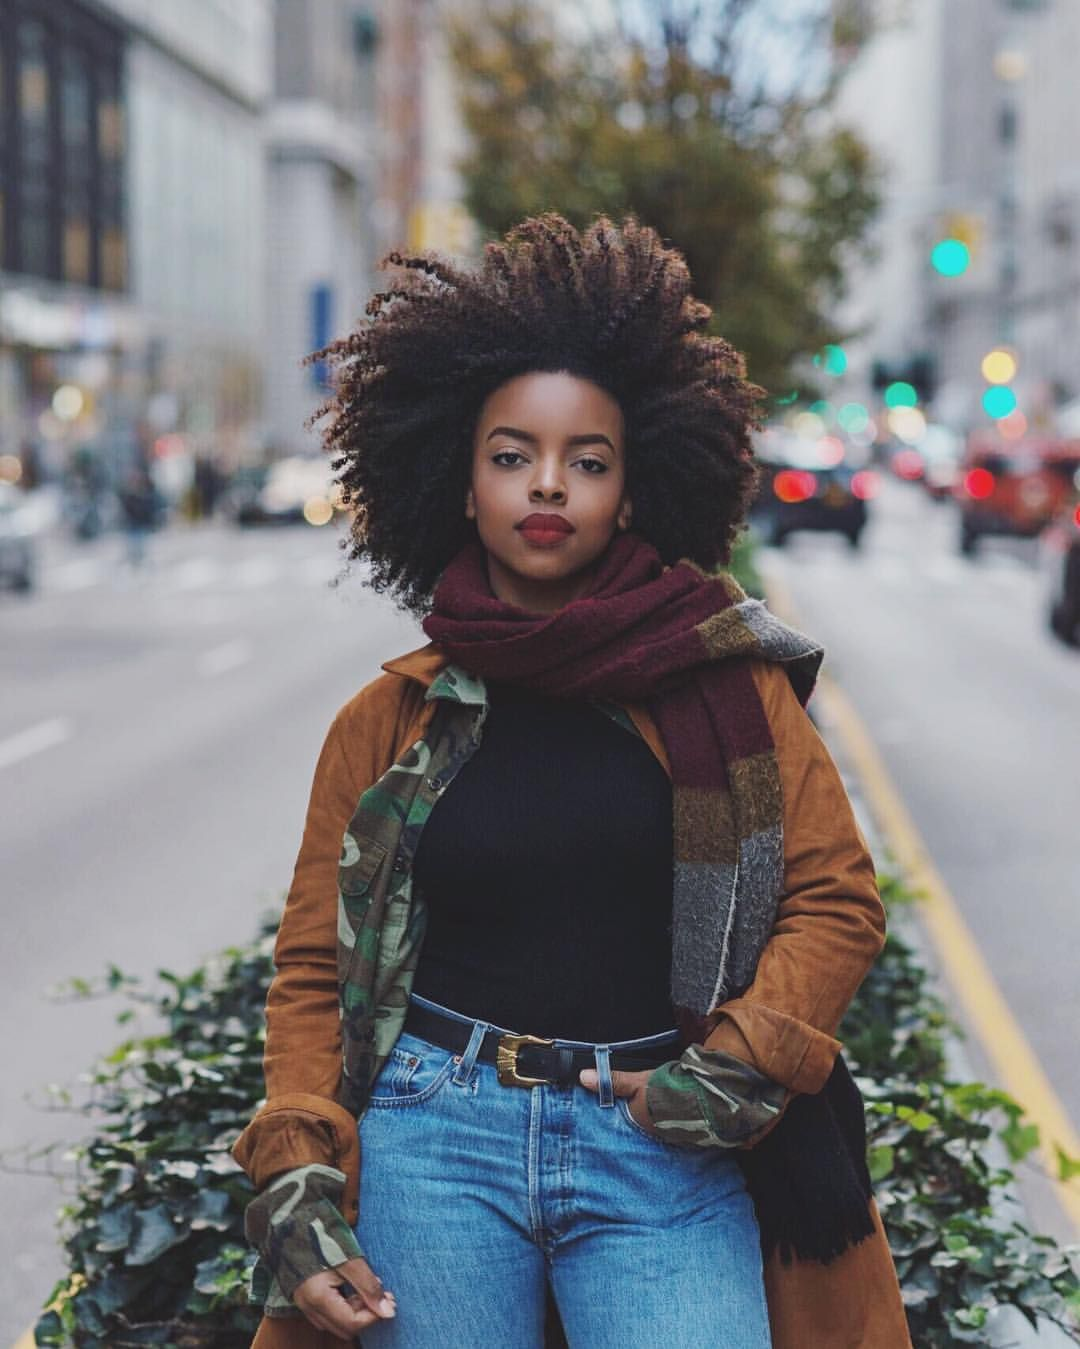 Stylish Black Woman: See This Instagram Photo By @africanmelaninnn • 3,926